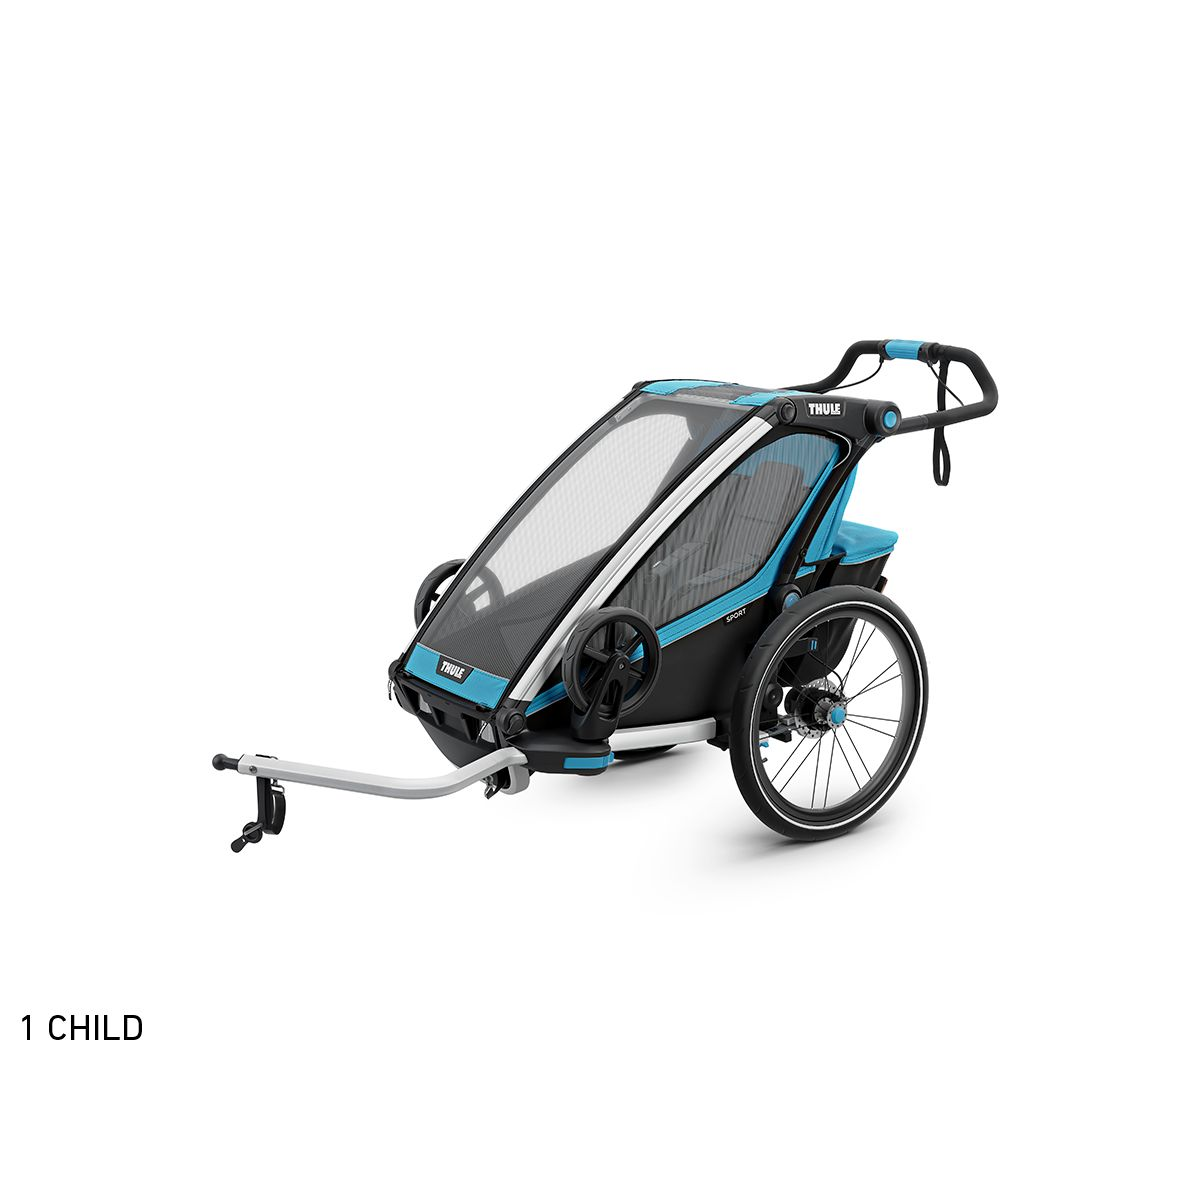 Chariot Sport Multisport child bike trailer